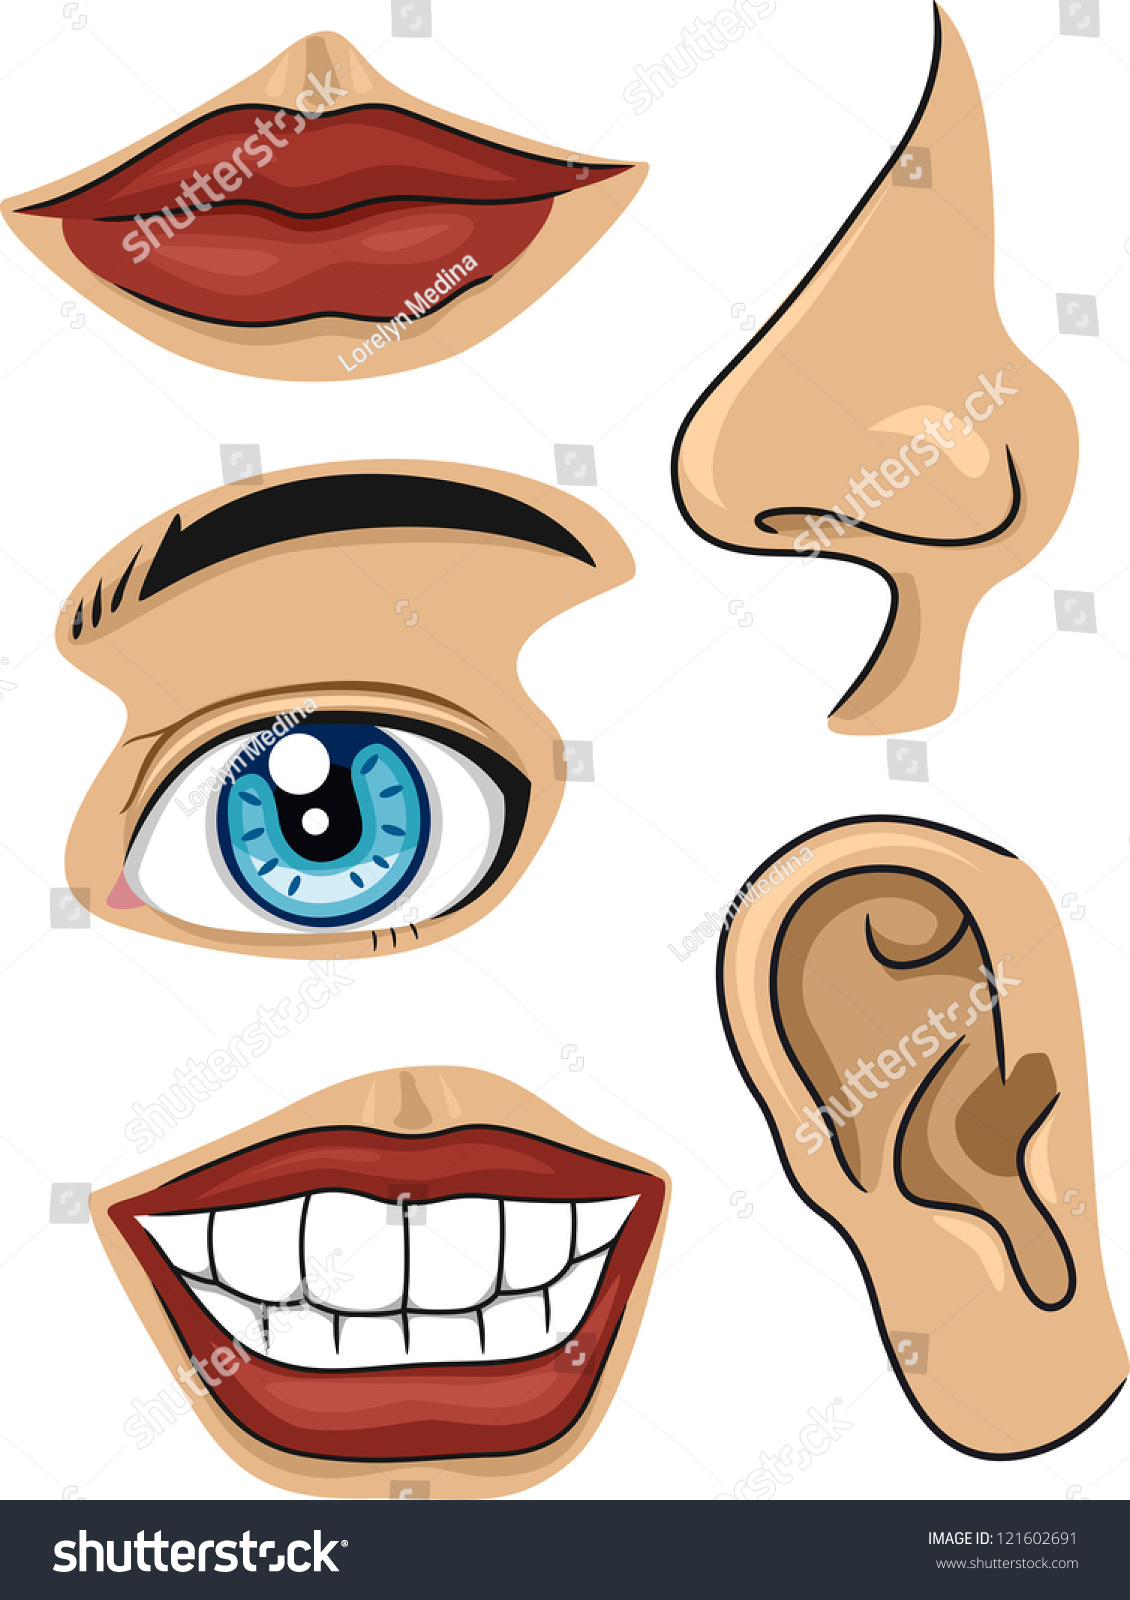 Illustration Different Parts Face Stock Vector